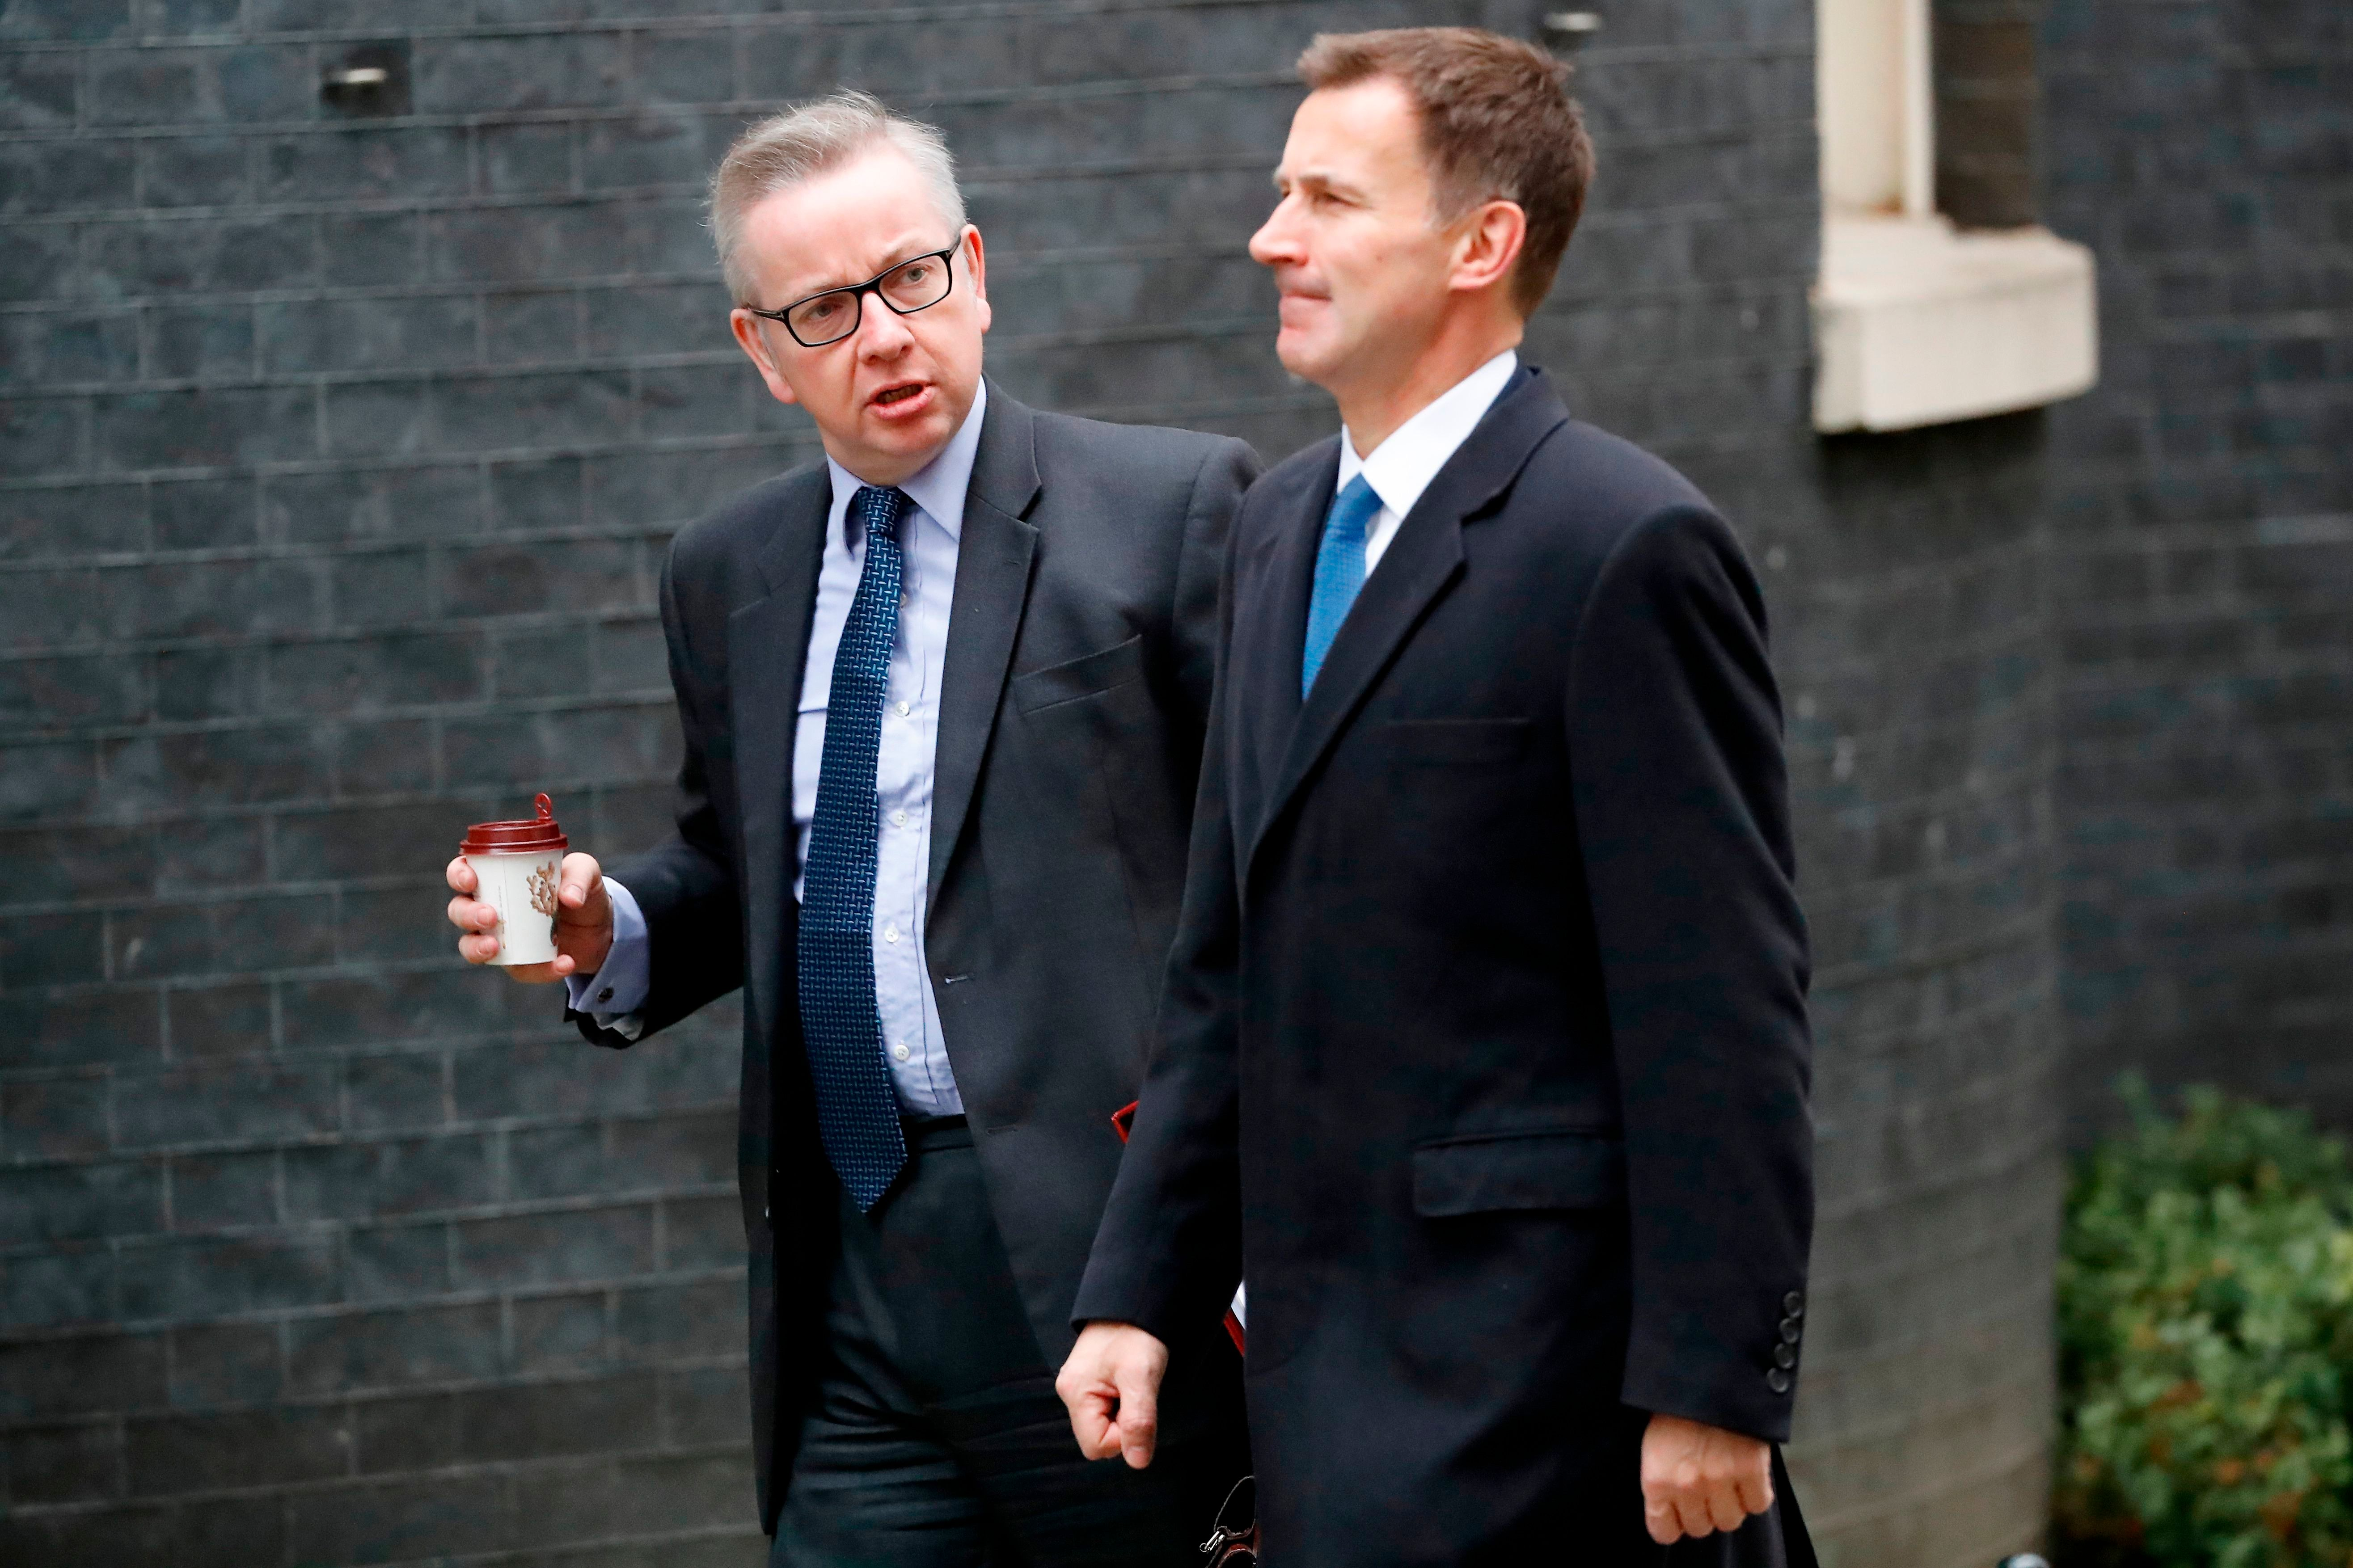 Britain's Environment, Food and Rural Affairs Secretary Michael Gove was spotted carrying a takeaway coffee on his way to a weekly Cabinet meeting in December.